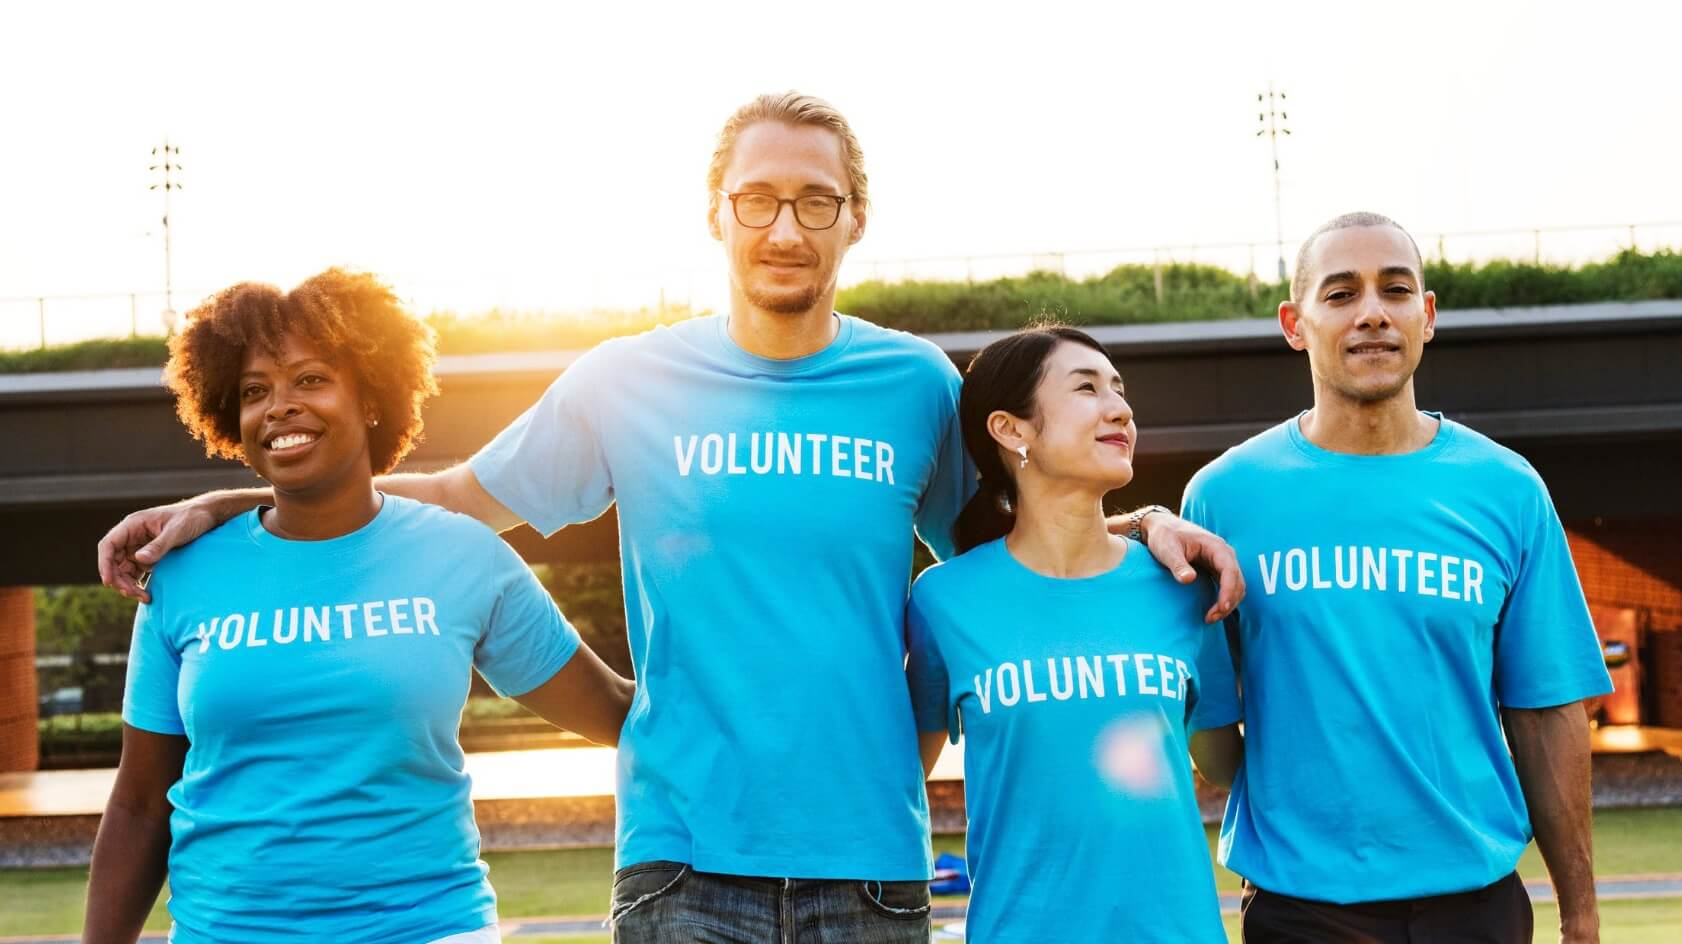 Volunteer Online for the United Nations